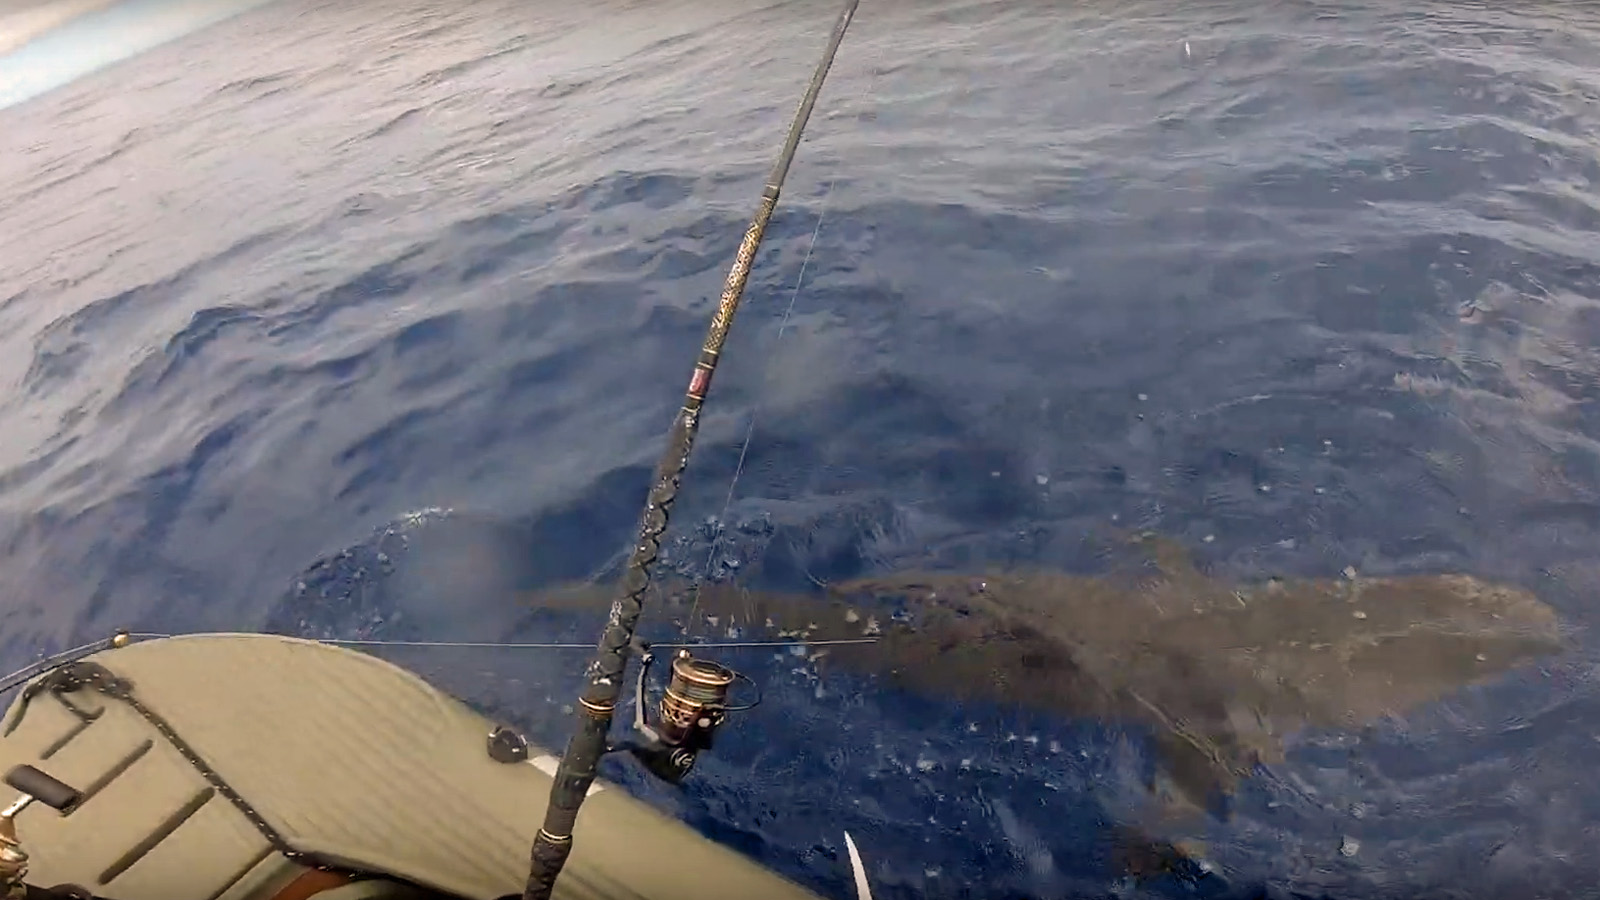 Shark caught in S4 skiff, Hawaii